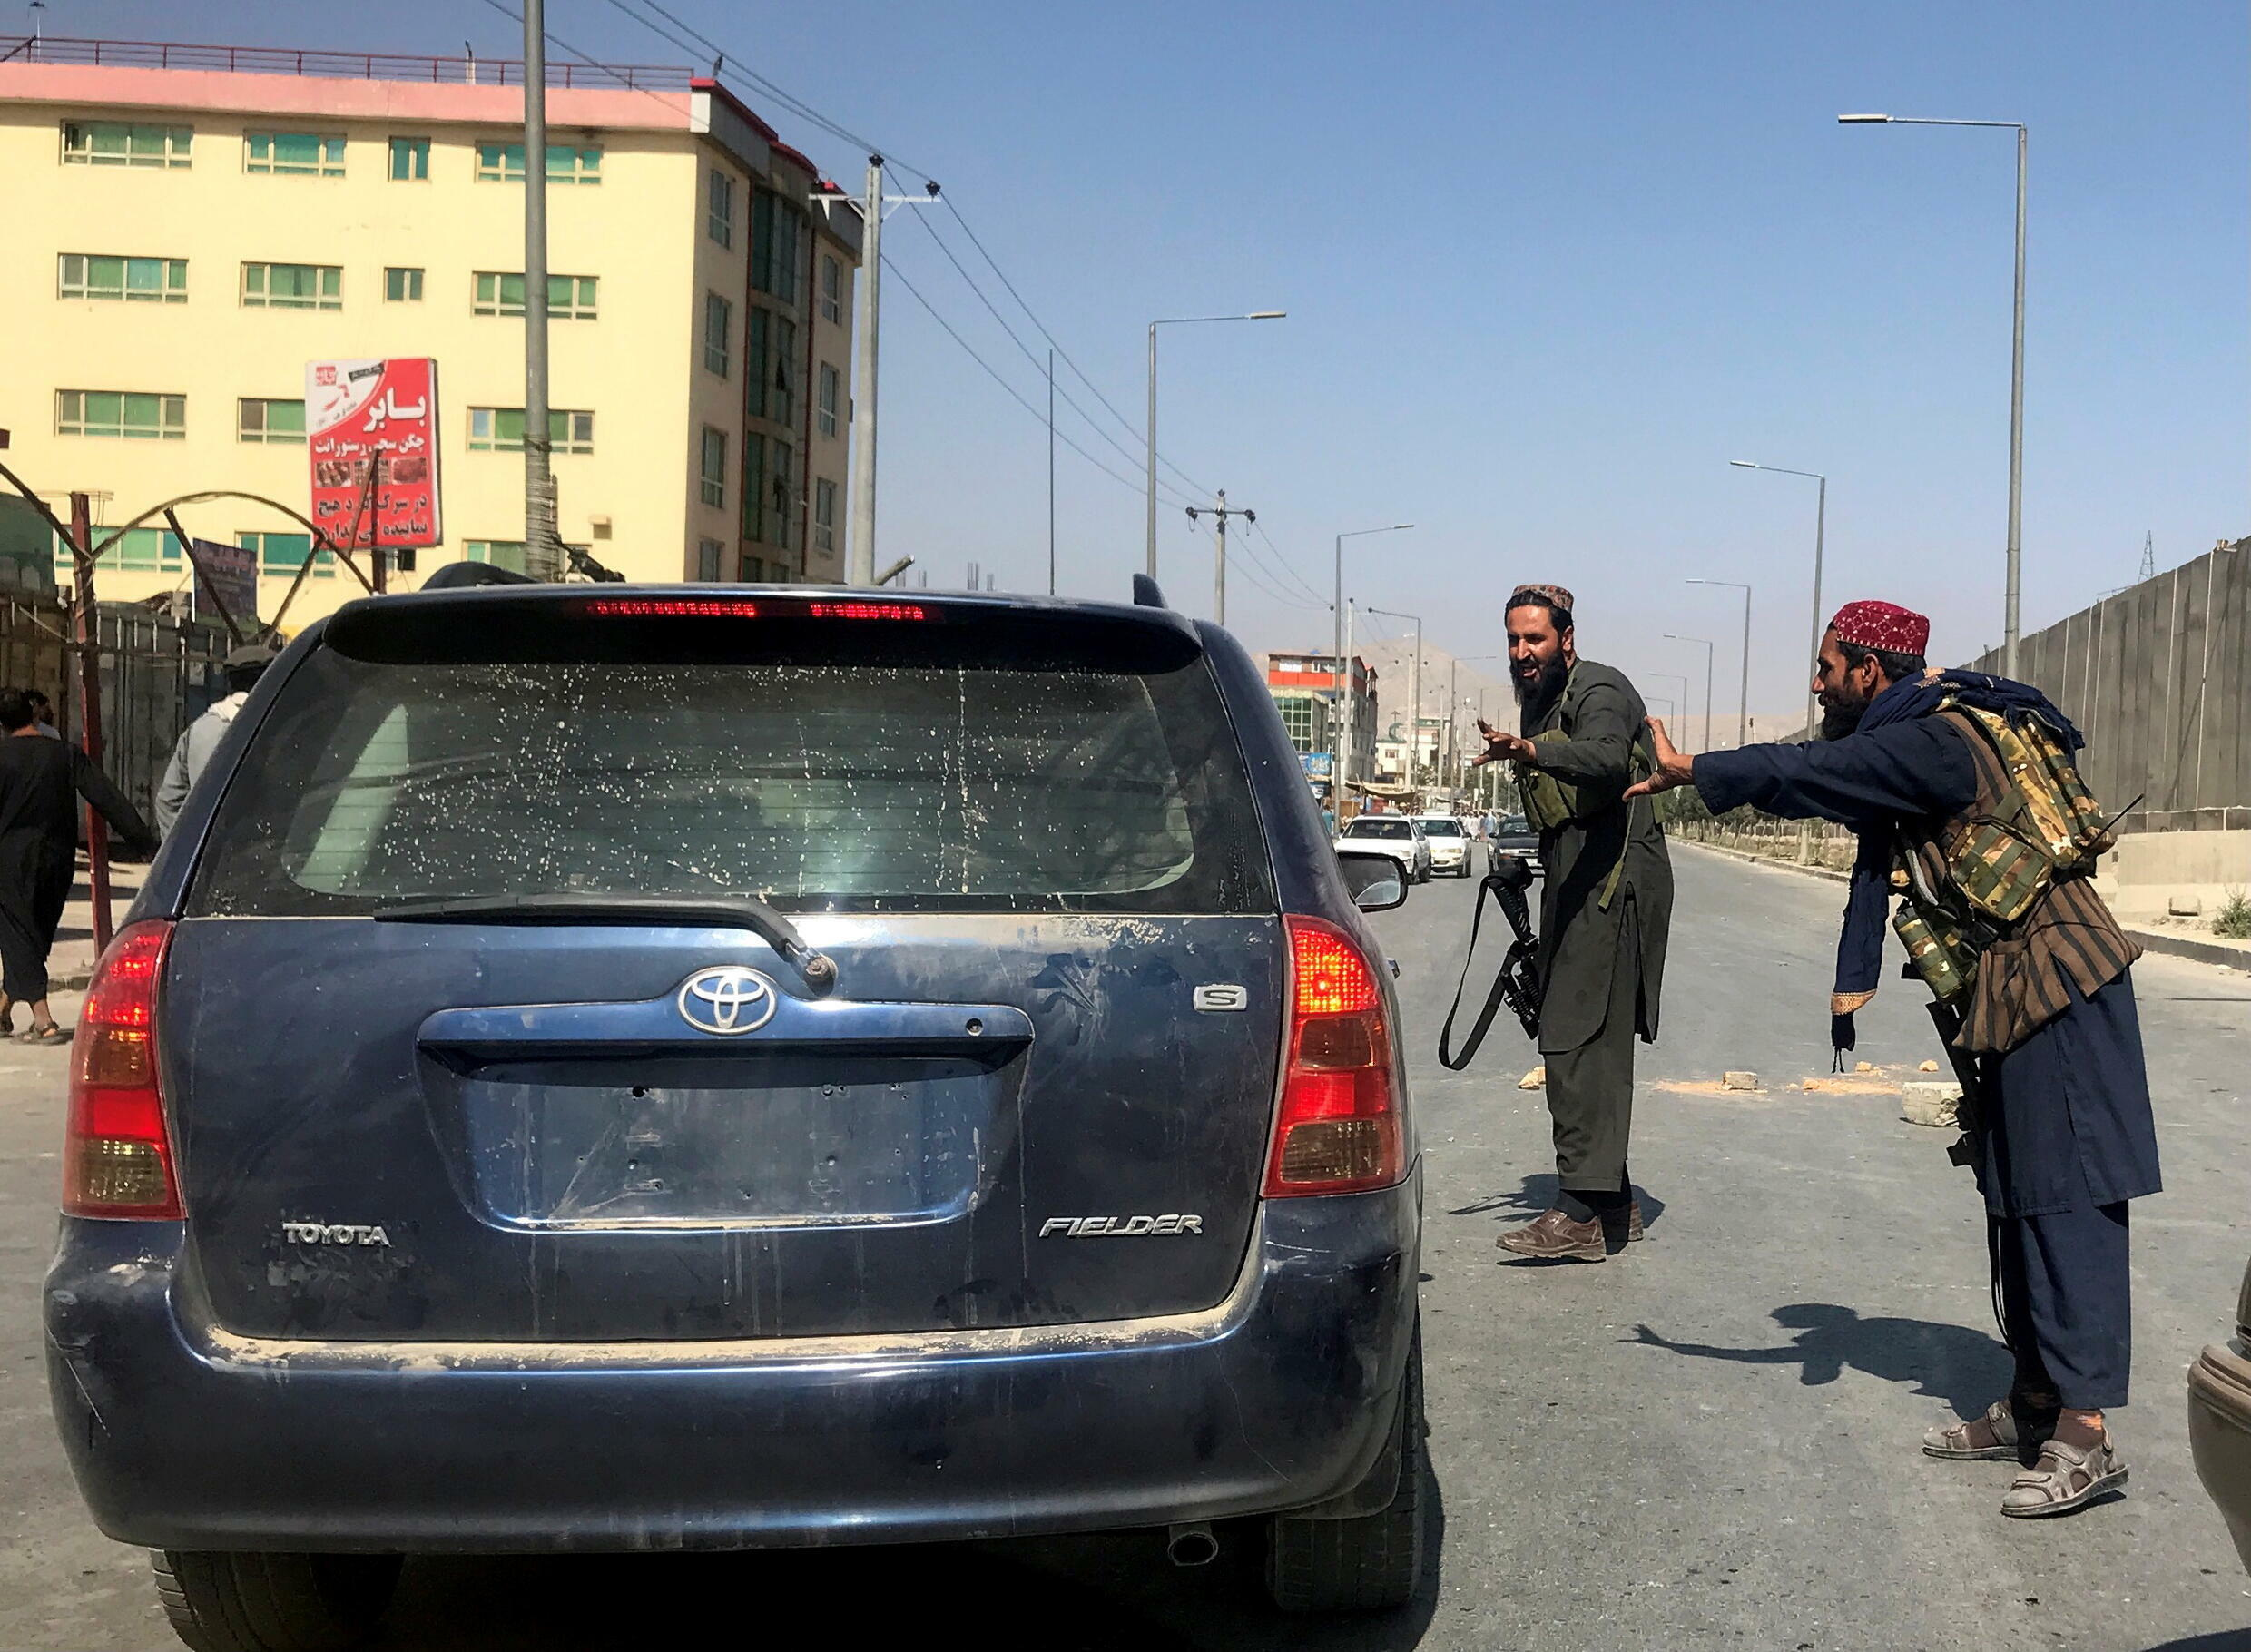 2021-08-16T091036Z_1166066022_RC246P9CRRJ7_RTRMADP_3_AFGHANISTAN-CONFLICT-KABUL